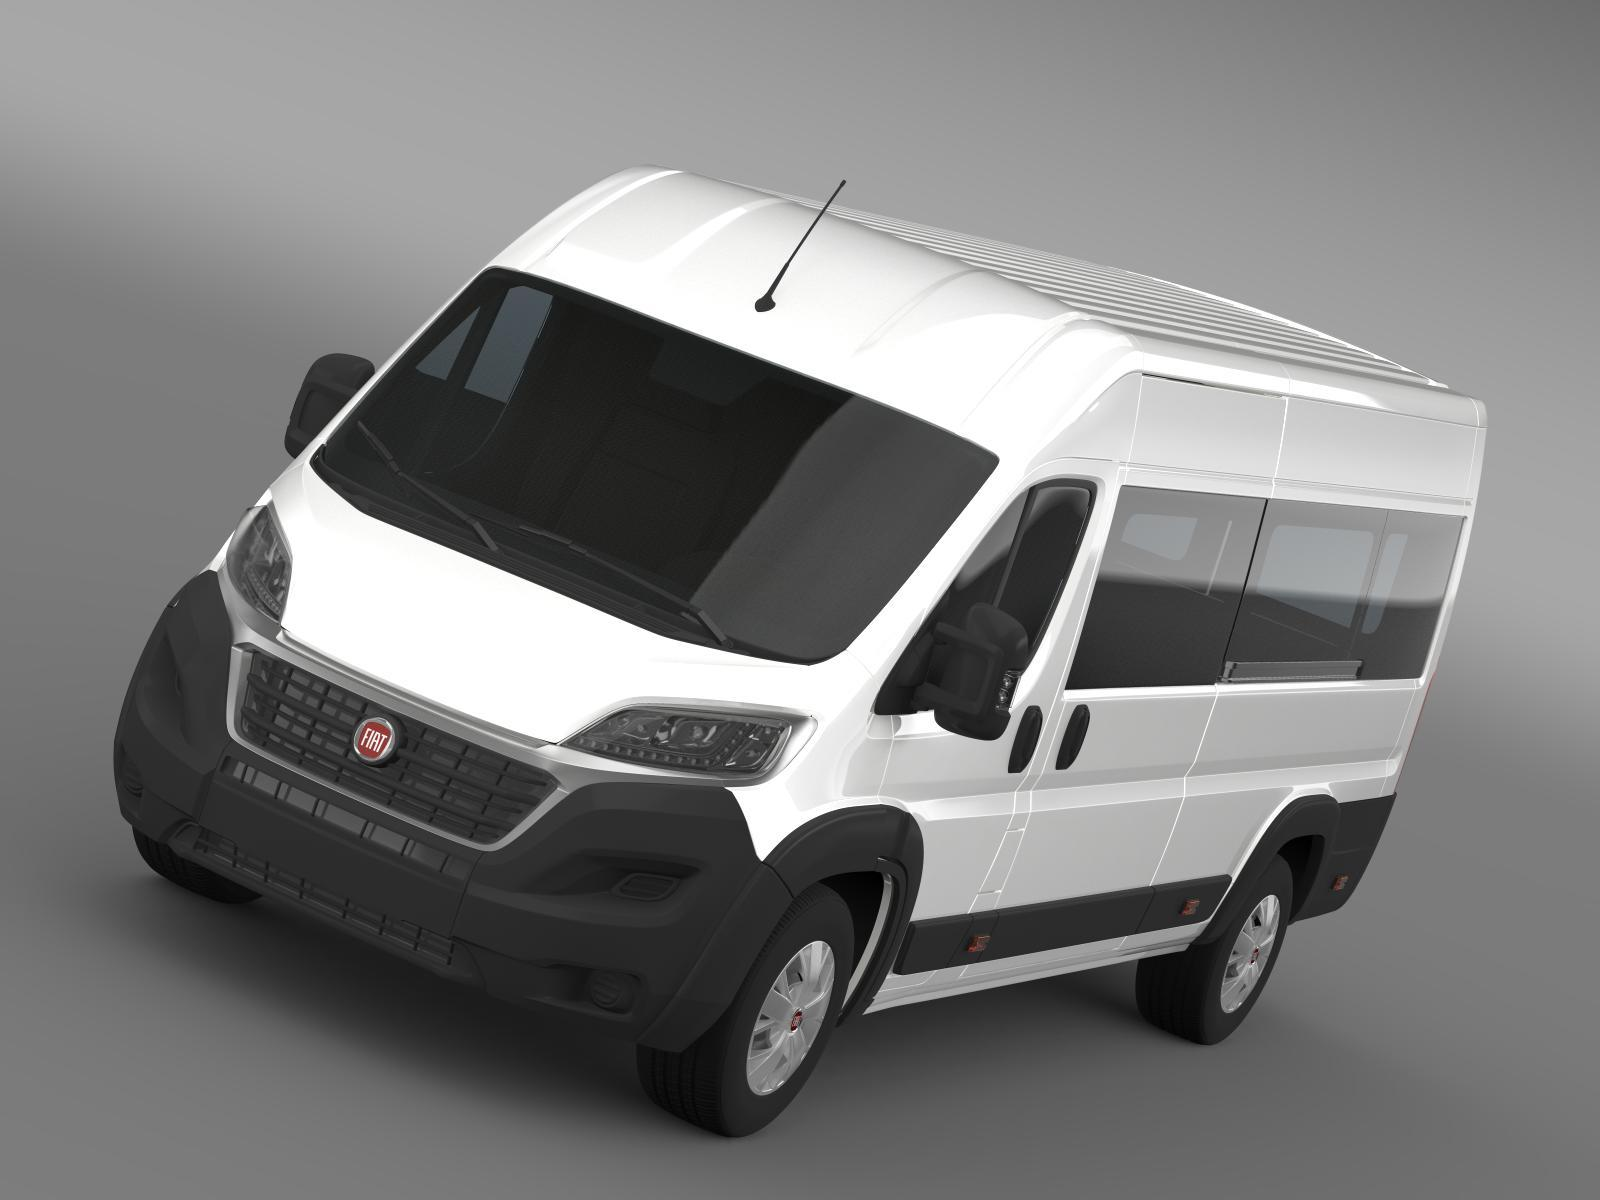 fiat ducato maxi minibus 2015 by creator 3d 3docean. Black Bedroom Furniture Sets. Home Design Ideas